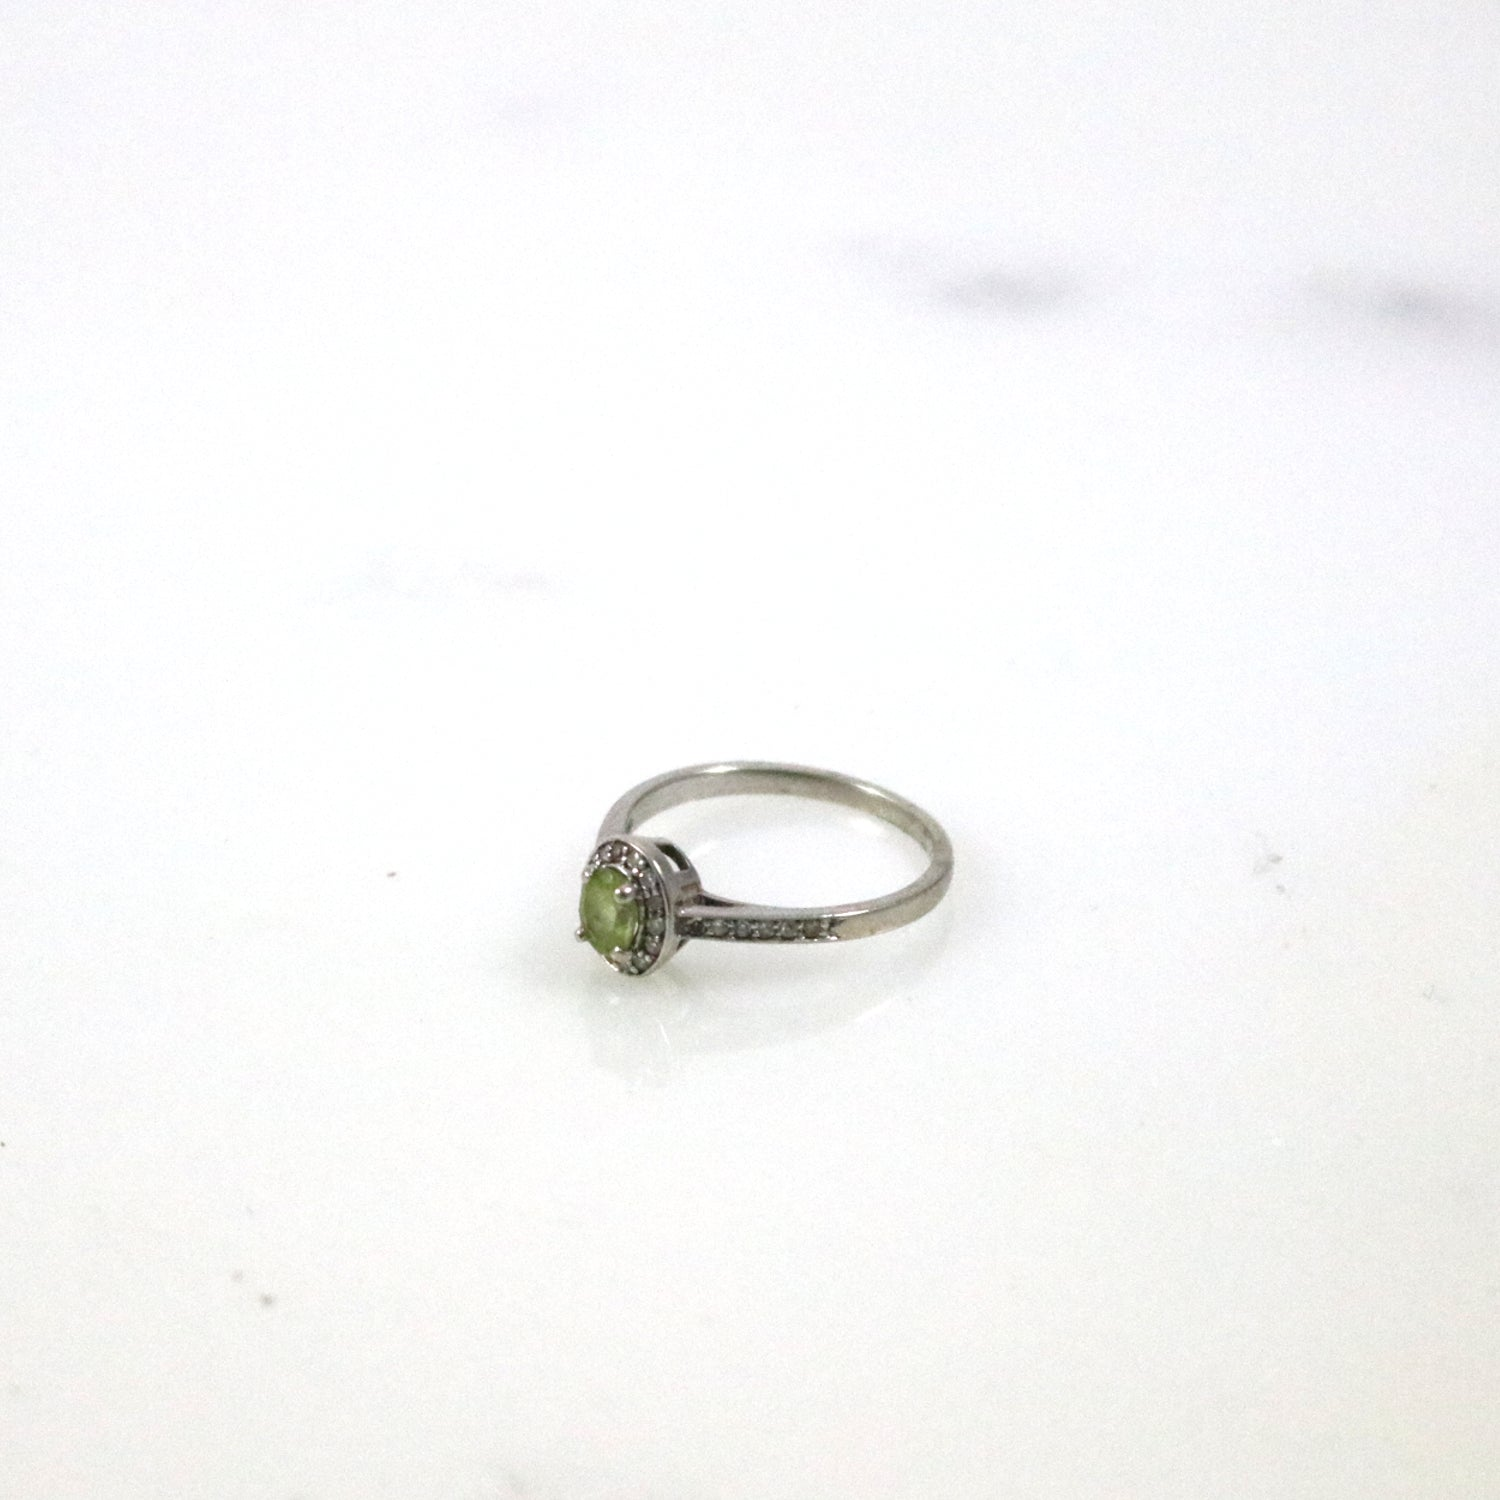 Oval Cut Peridot Ring